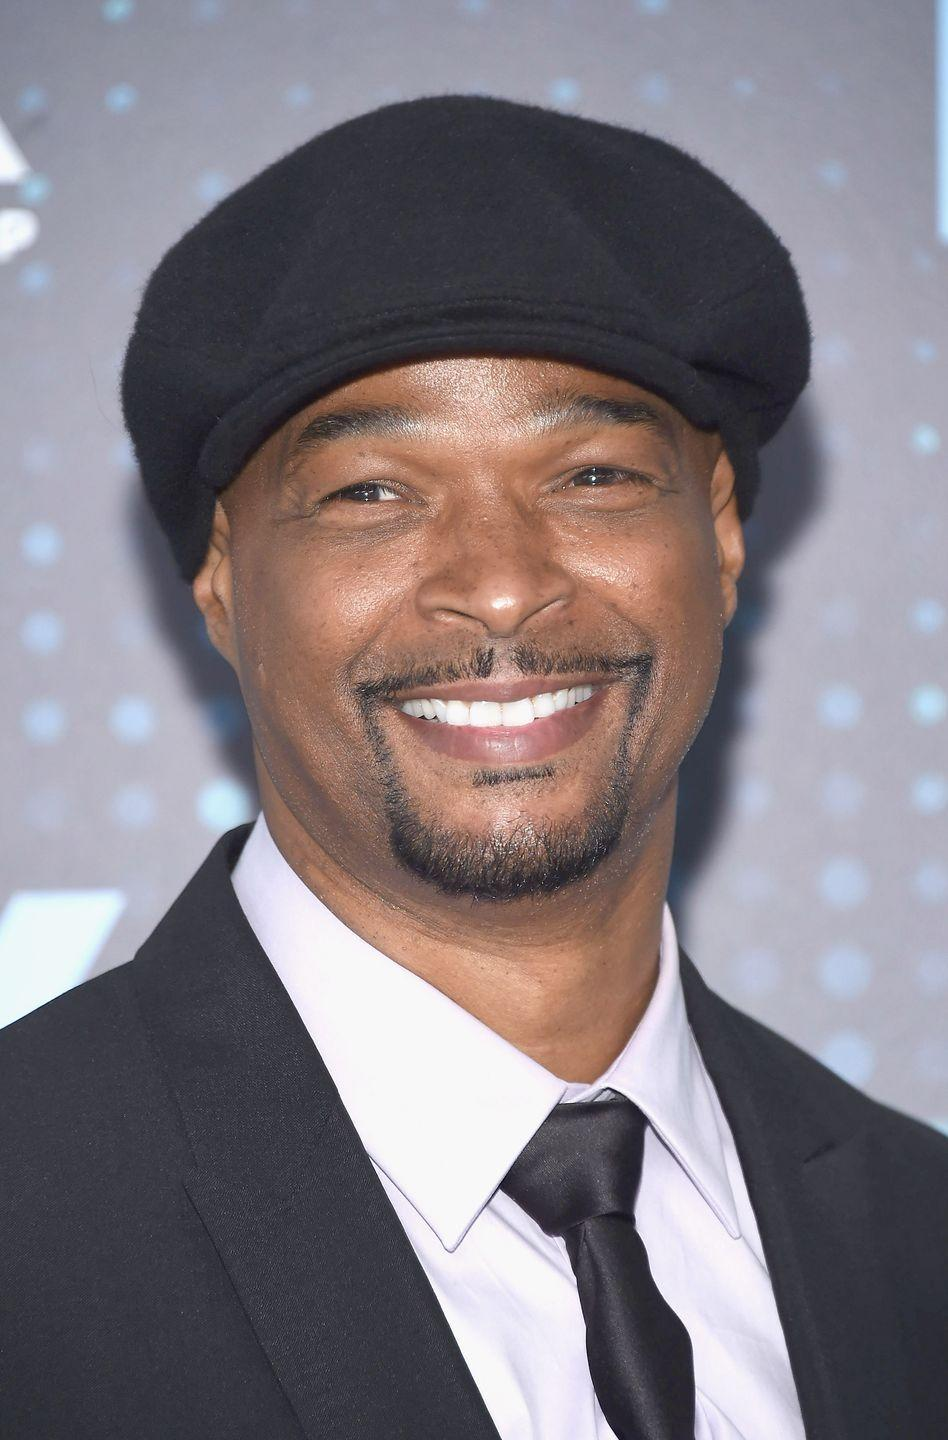 """<p>Wayans <a href=""""https://www.bet.com/celebrities/photos/2015/01/successful-celebs-who-dropped-out-of-high-school.html#!012515-celebs-successful-celebs-who-dropped-out-of-high-school-Damon-Wayans"""" rel=""""nofollow noopener"""" target=""""_blank"""" data-ylk=""""slk:dropped out"""" class=""""link rapid-noclick-resp"""">dropped out</a> as a freshman to follow his older brother to Los Angeles. He later became the star of his brother's hit sketch-comedy show, In <em>Living Color</em>.</p>"""